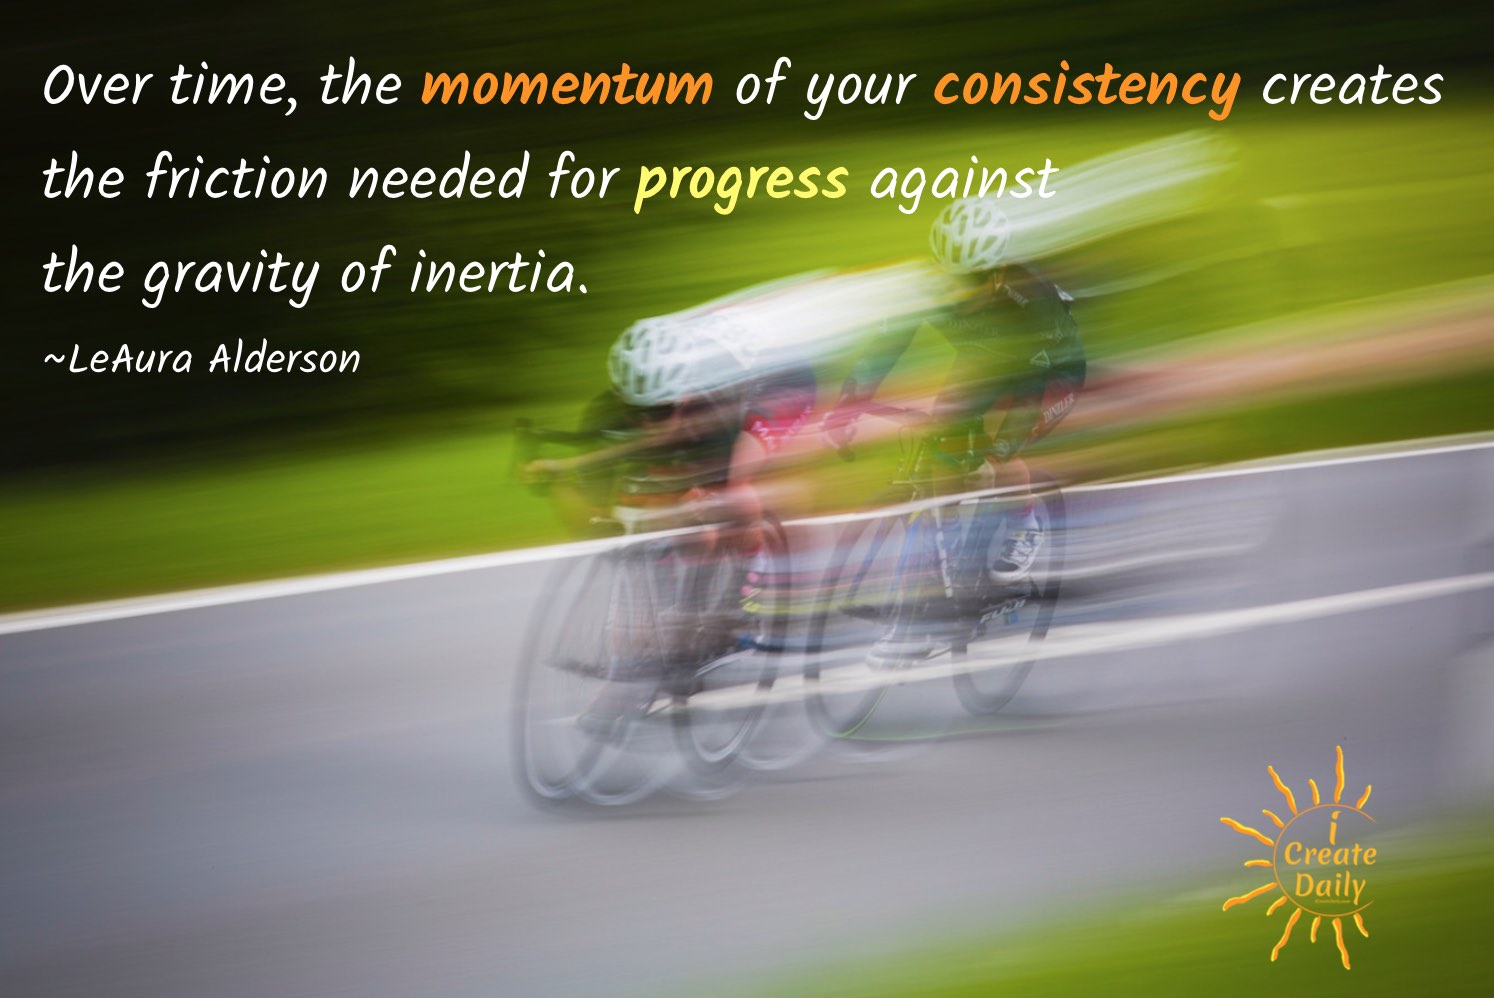 Over time, the momentum of your consistency creates the friction needed for progress against the gravity of inertia.~LeAura Alderson, iCreateDaily.com® #ConsistencyQuote #SuccessQuote #MomentumQuote #PersistenceQuote